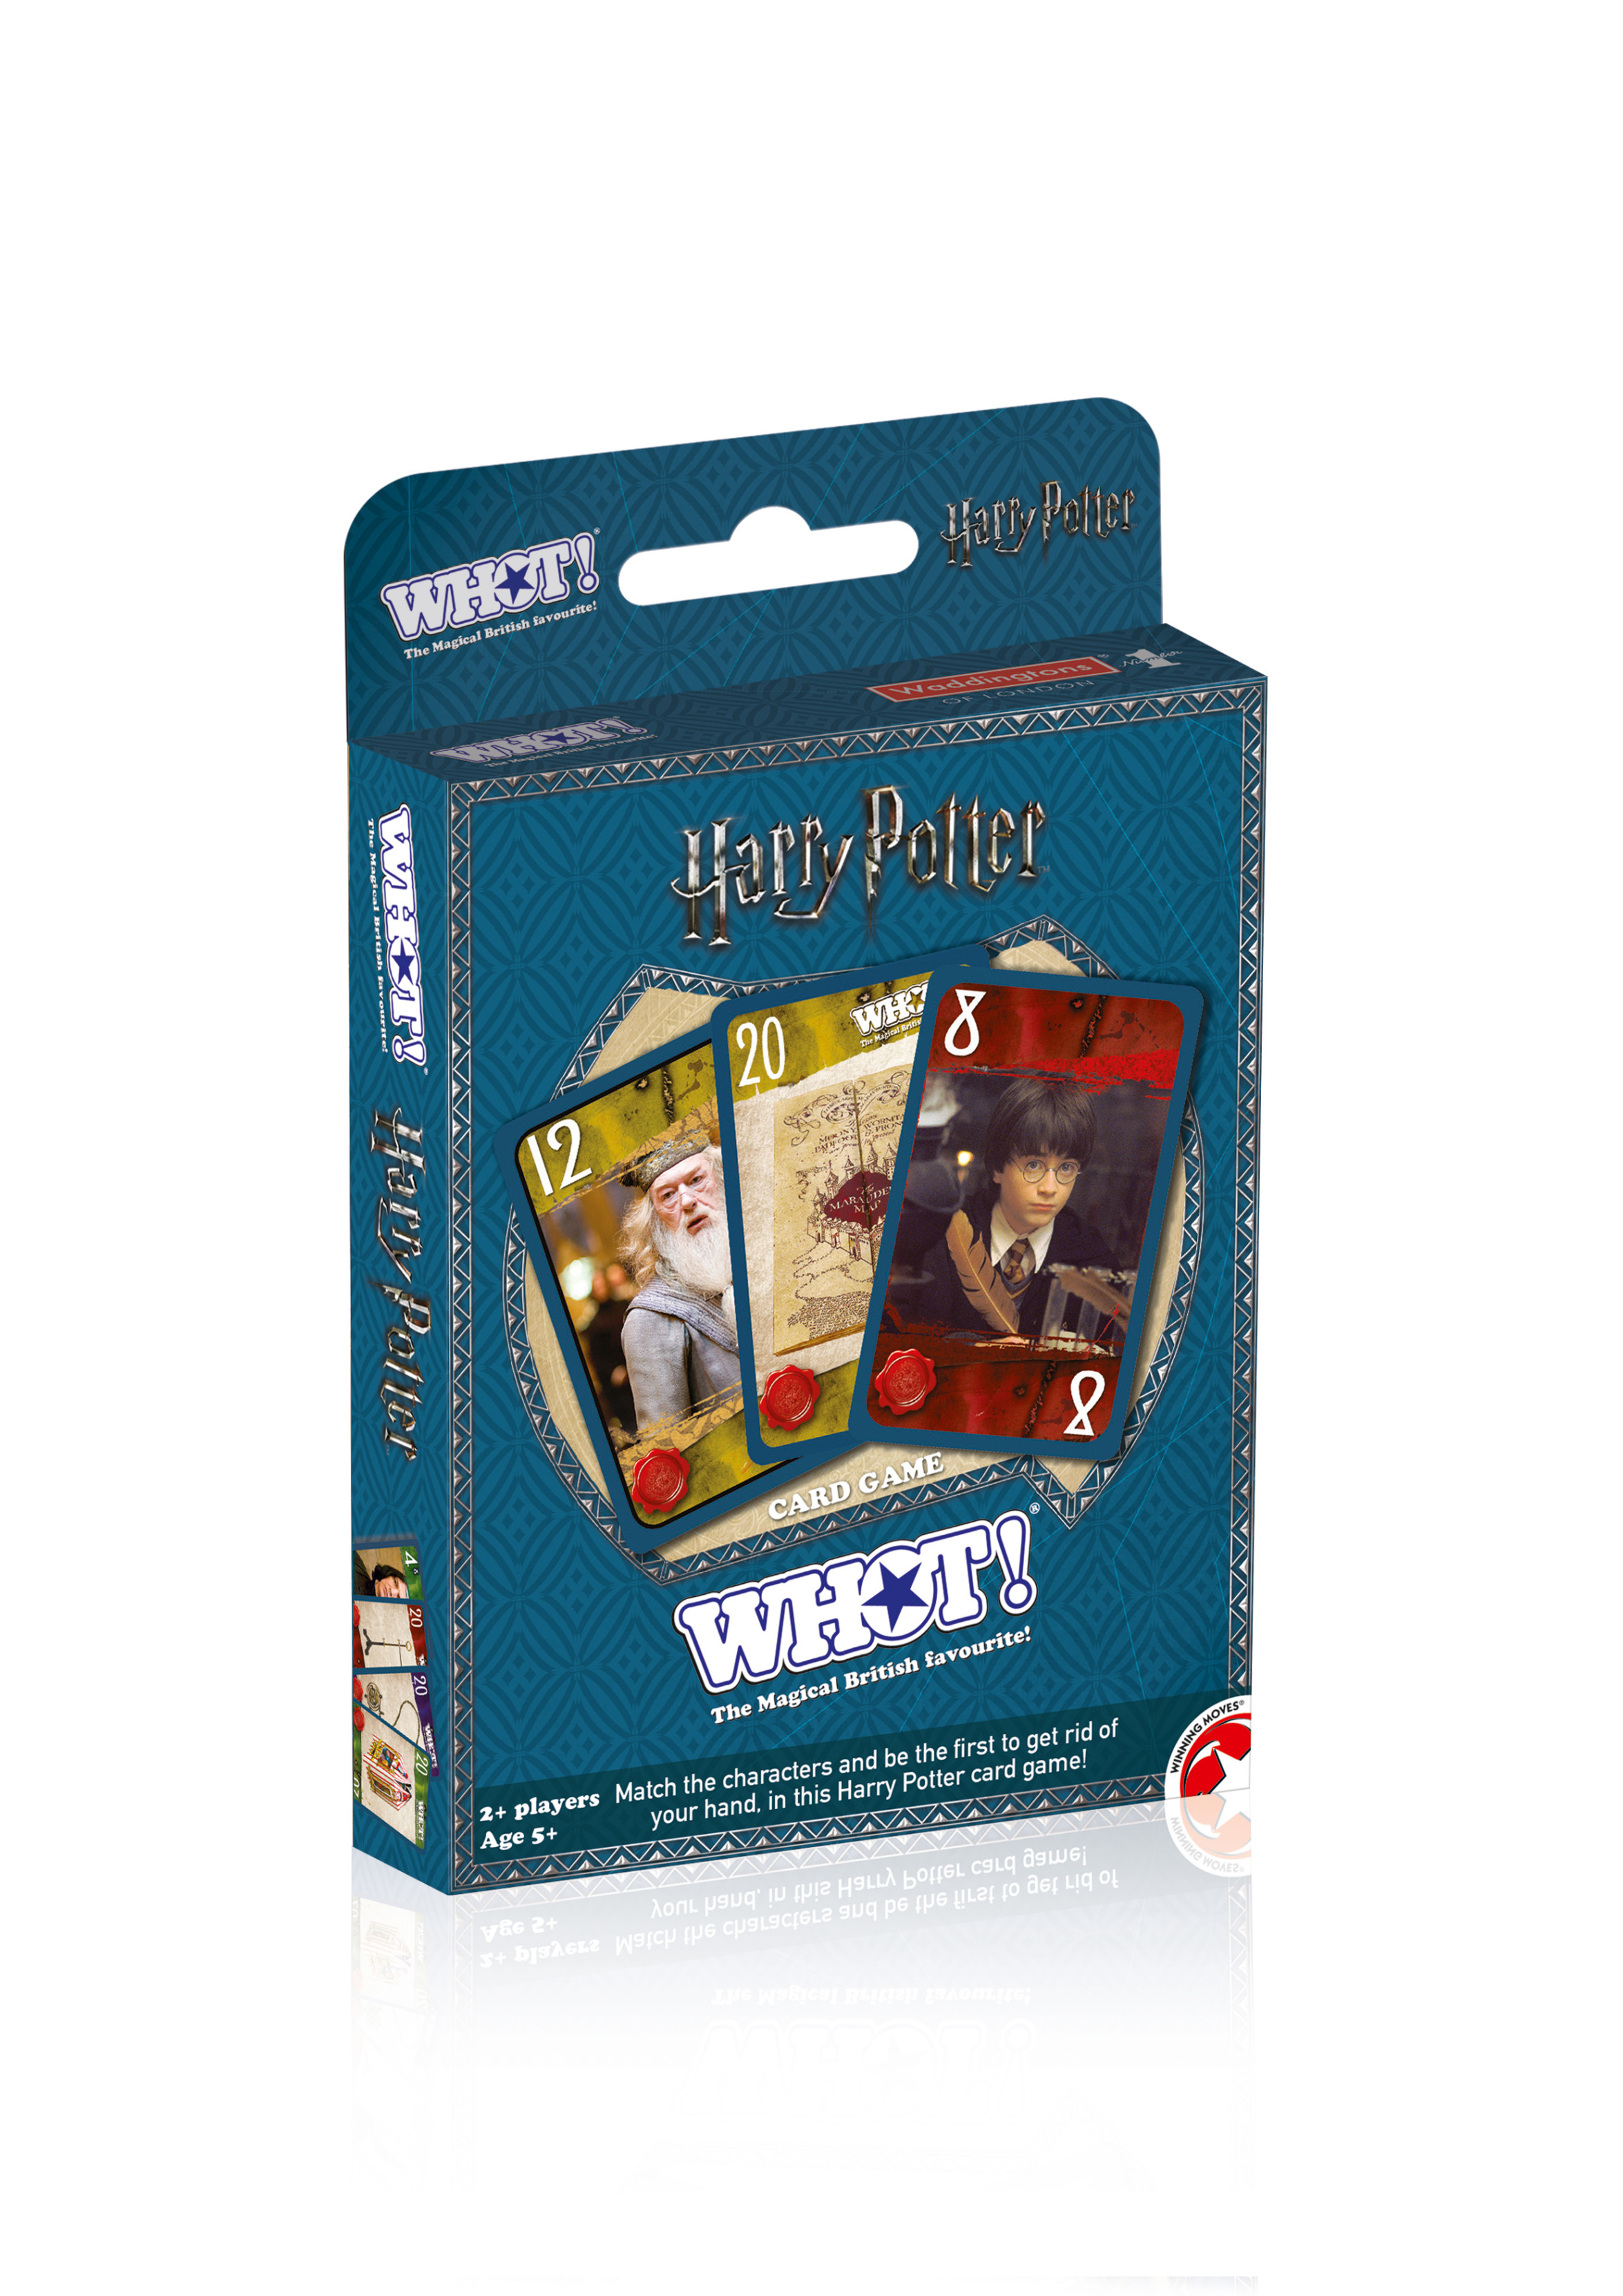 Whot! - Harry Potter